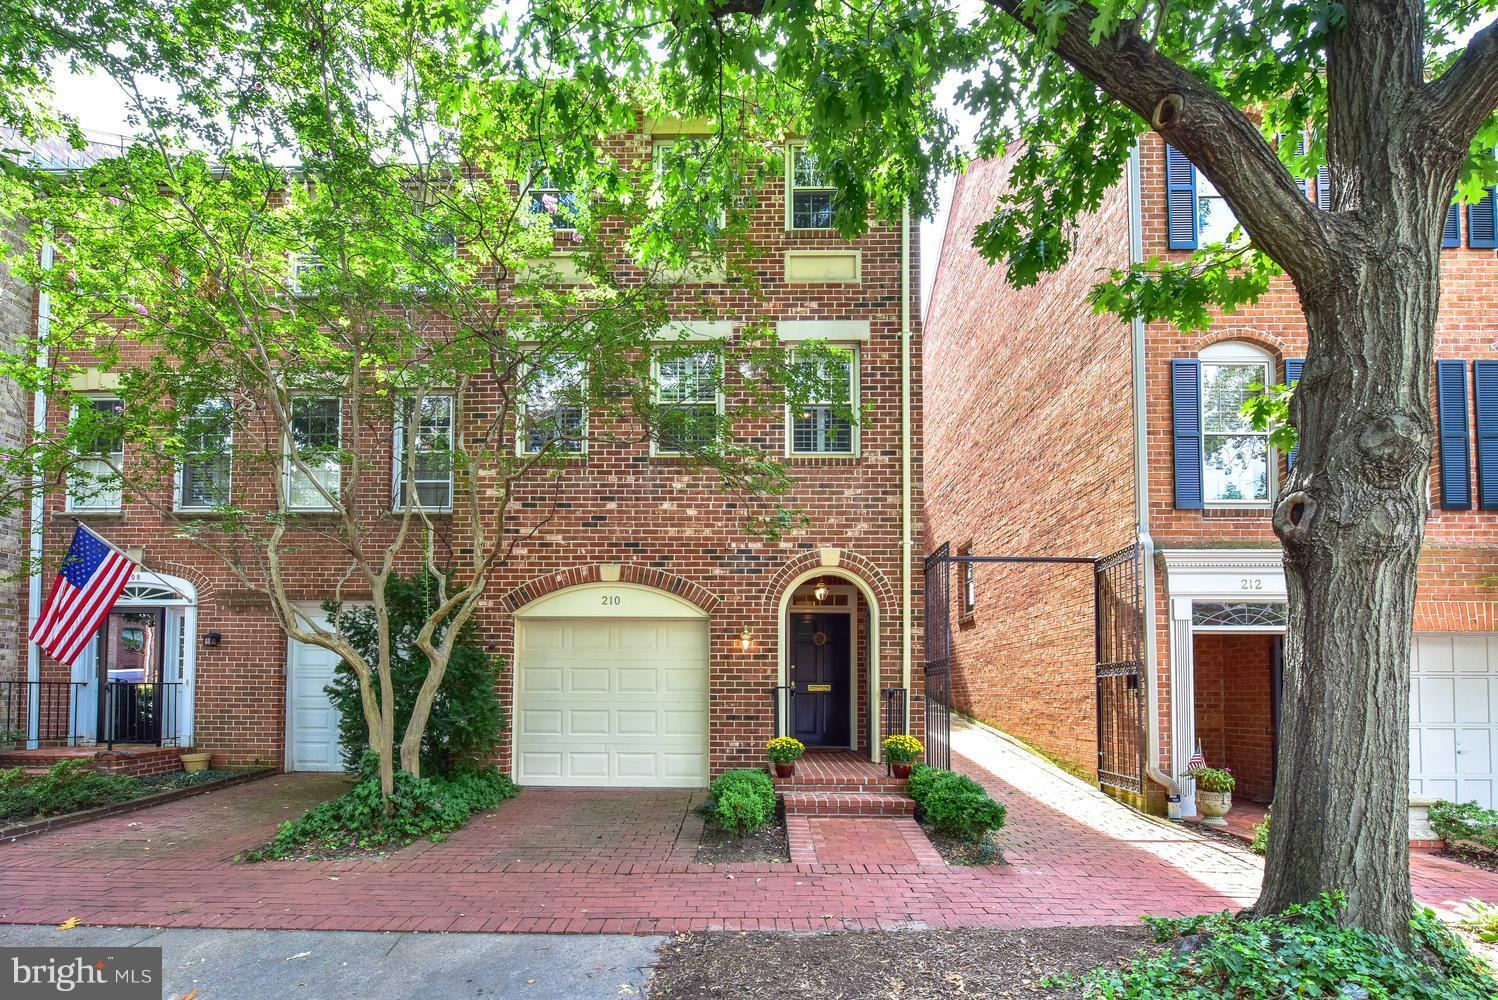 CHARMING END BRICK TH IN THE HEART OF OLD TOWN ONLY 2 BLOCKS FROM THE POTOMAC RIVER! LR OFFERS 11'CEILING, WOOD BURNING FP, BUILT-IN BOOKSHELVES AND FRENCH DOORS LEADING OUT TO THE PRIVATE PATIO. SEP DINING ROOM,CHEF'S KITCHEN W TABLE SPACE.2BR EACH W FULL BATH,GARAGE,AND DRIVEWAY., LL DEN /HOME OFFICE,,HDWD FLOORS  THROUGHOUT, SWIMMING POOL AND TENNIS COURT!